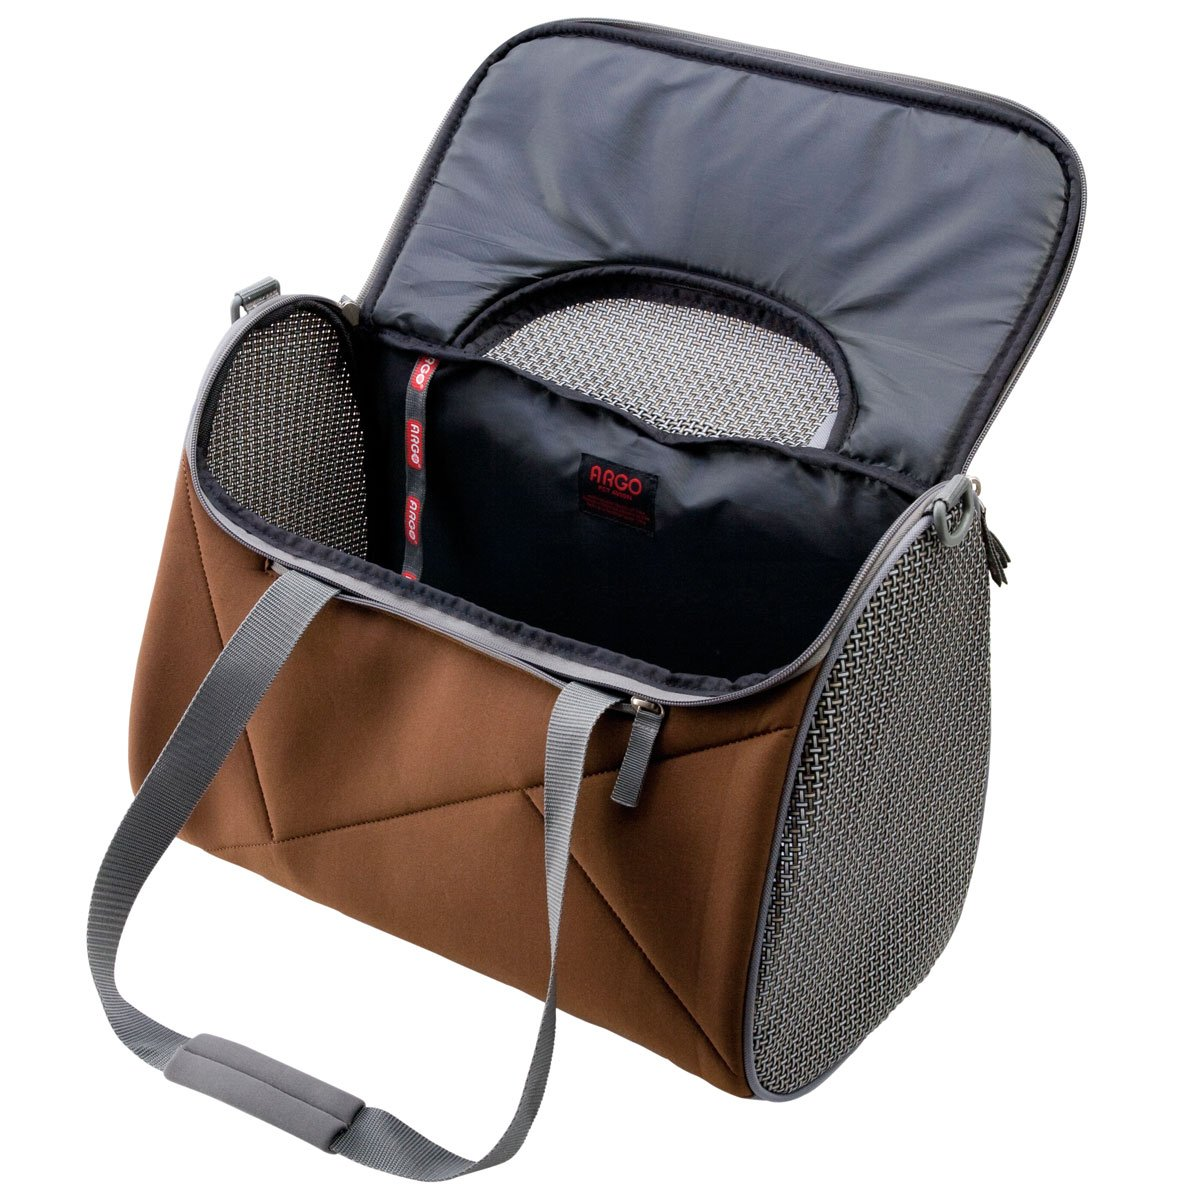 Chocolate Brown ARGO by Teafco Pet Avion Airline Approved Pet Carrier Medium 17-Inch Length x 9-Inch Width x 12-Inch Height